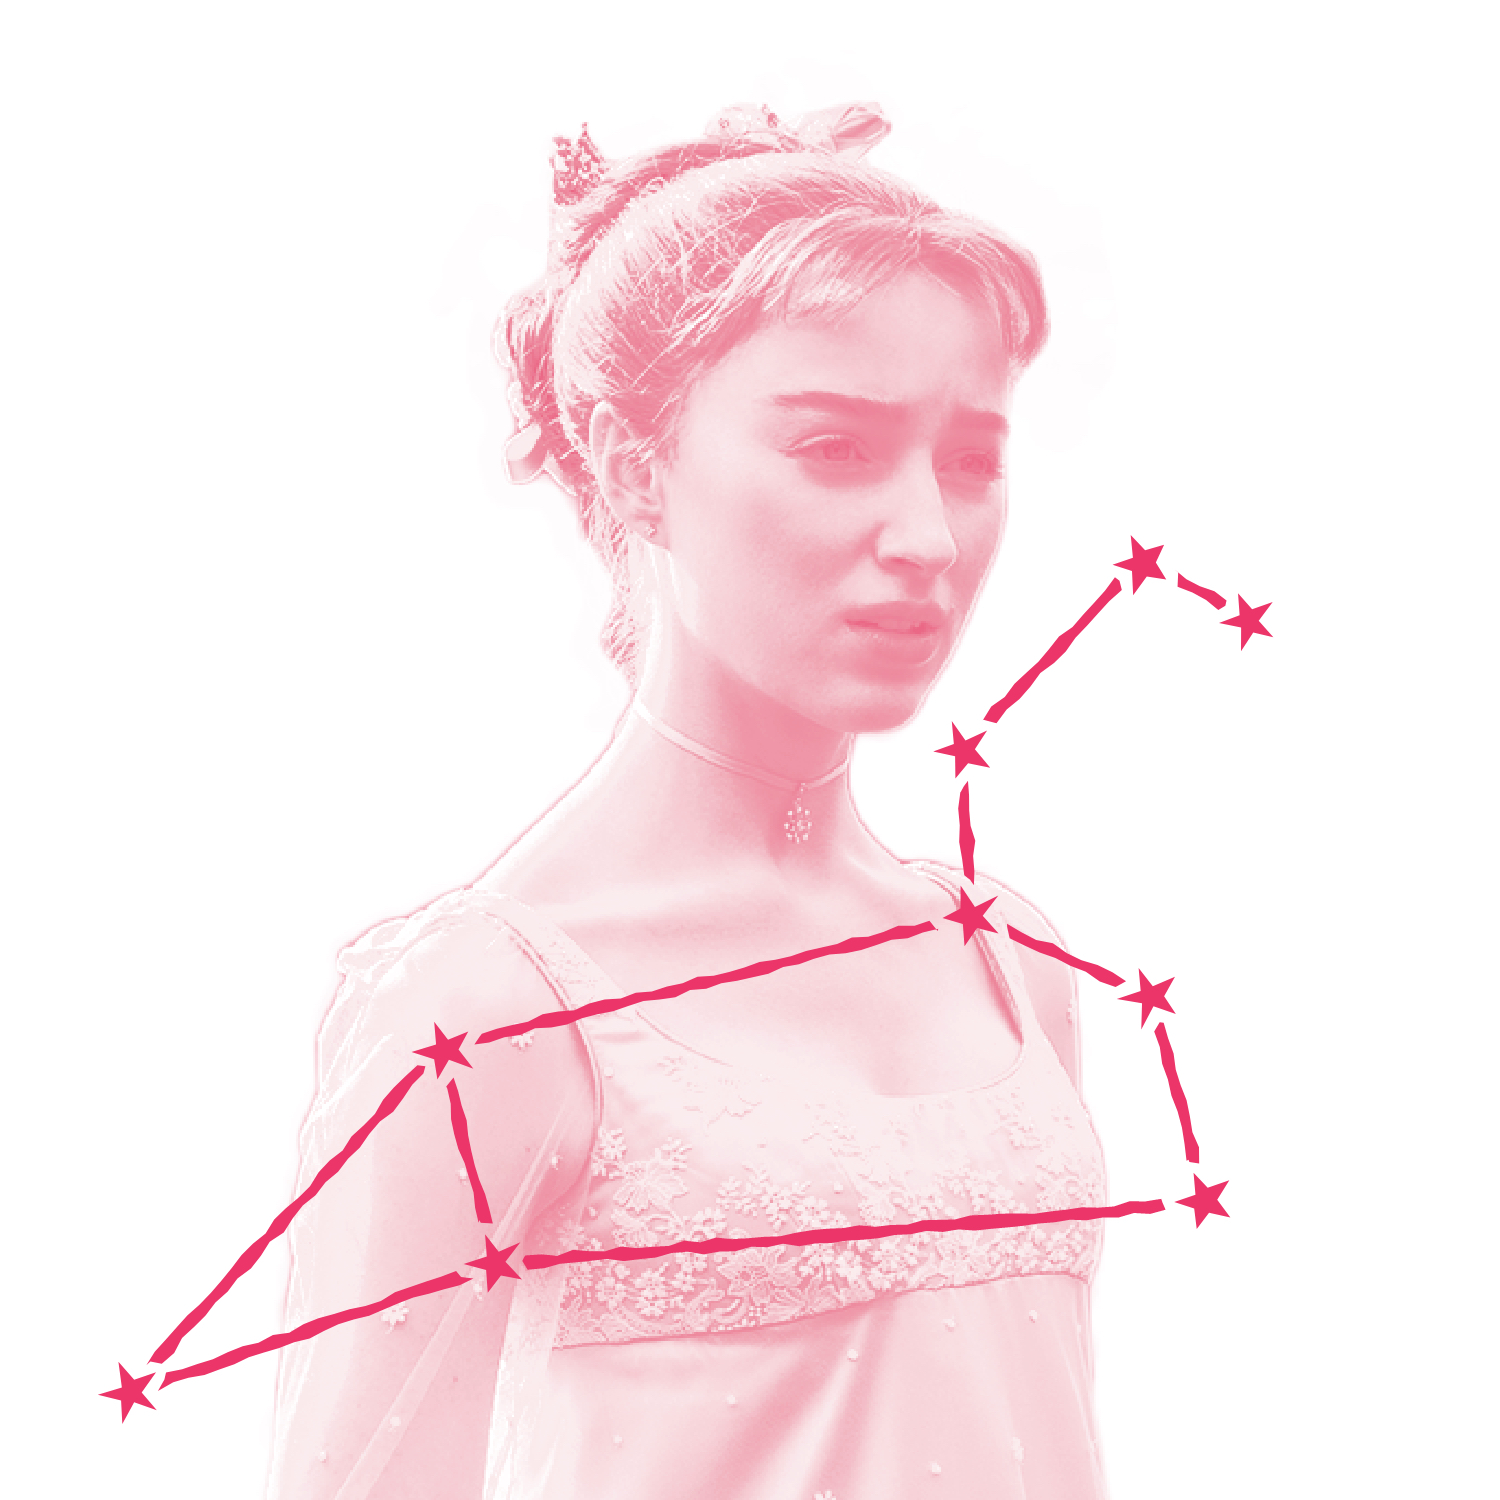 Daphne Bridgerton (played by Phoebe Dynevor) wears the expression of the love-lorn and righteous in this still from Bridgerton. Who in the world do you think she's brooding over? Over the image is an illustration of Daphne's zodiac constellation.